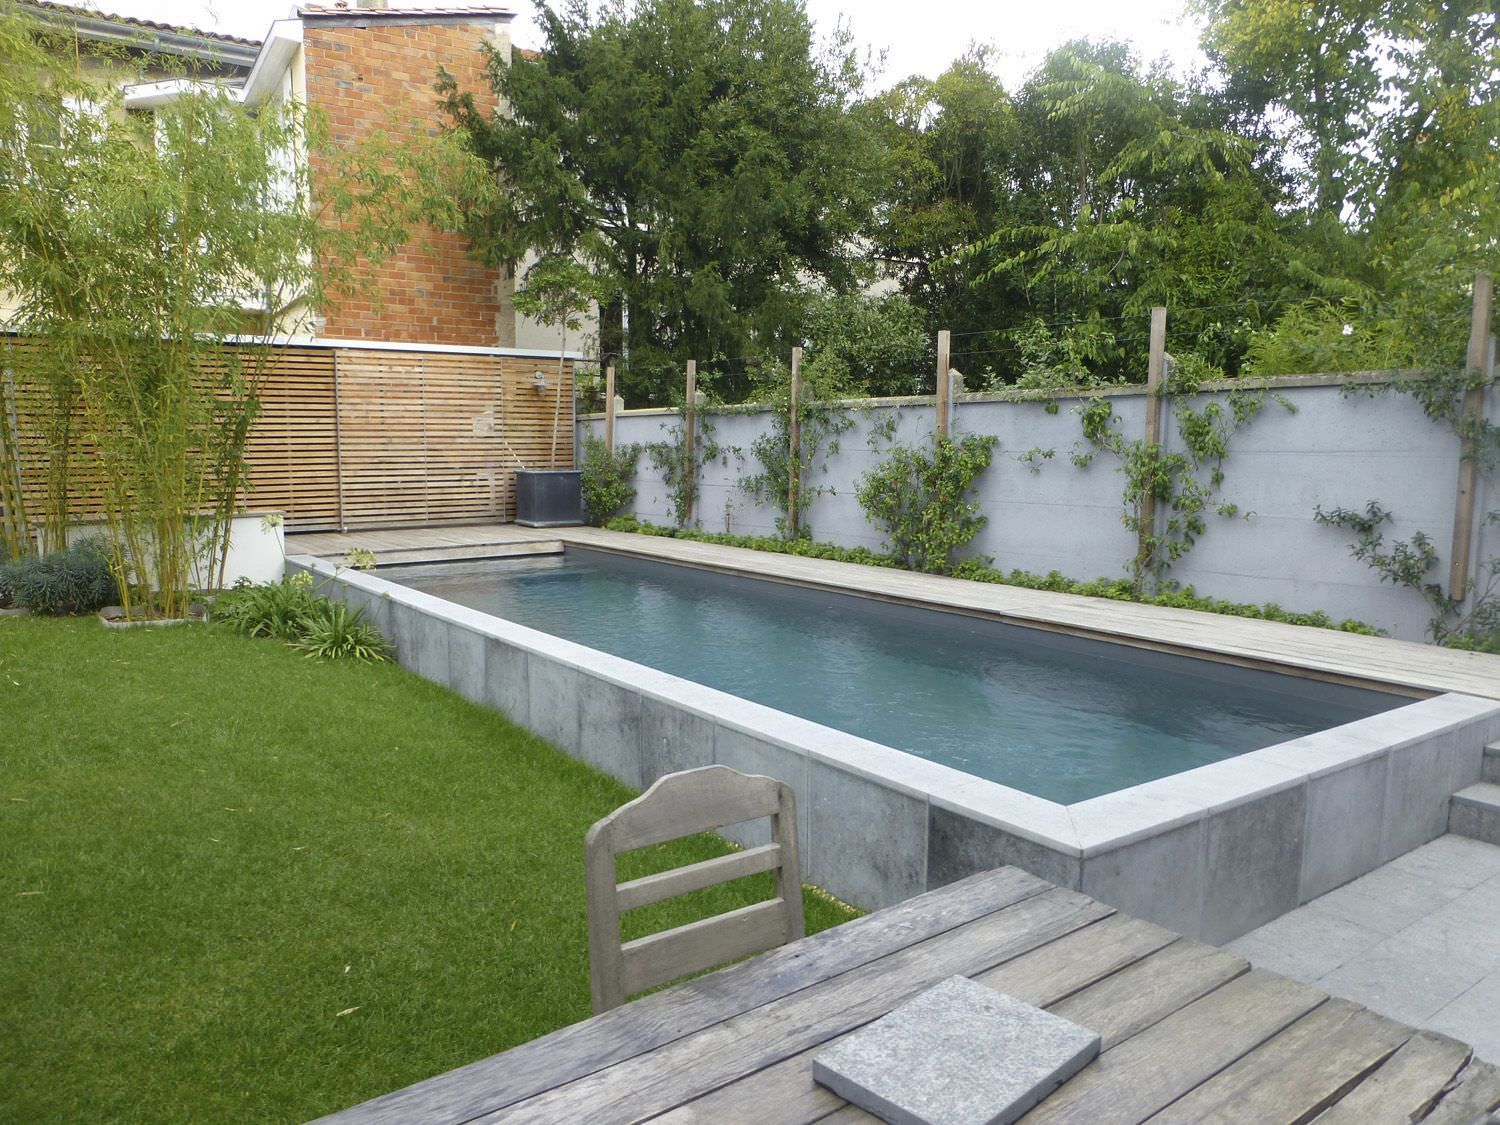 Piscine semi enterr e en b ton plouf pinterest for Piscine hexagonale semi enterree